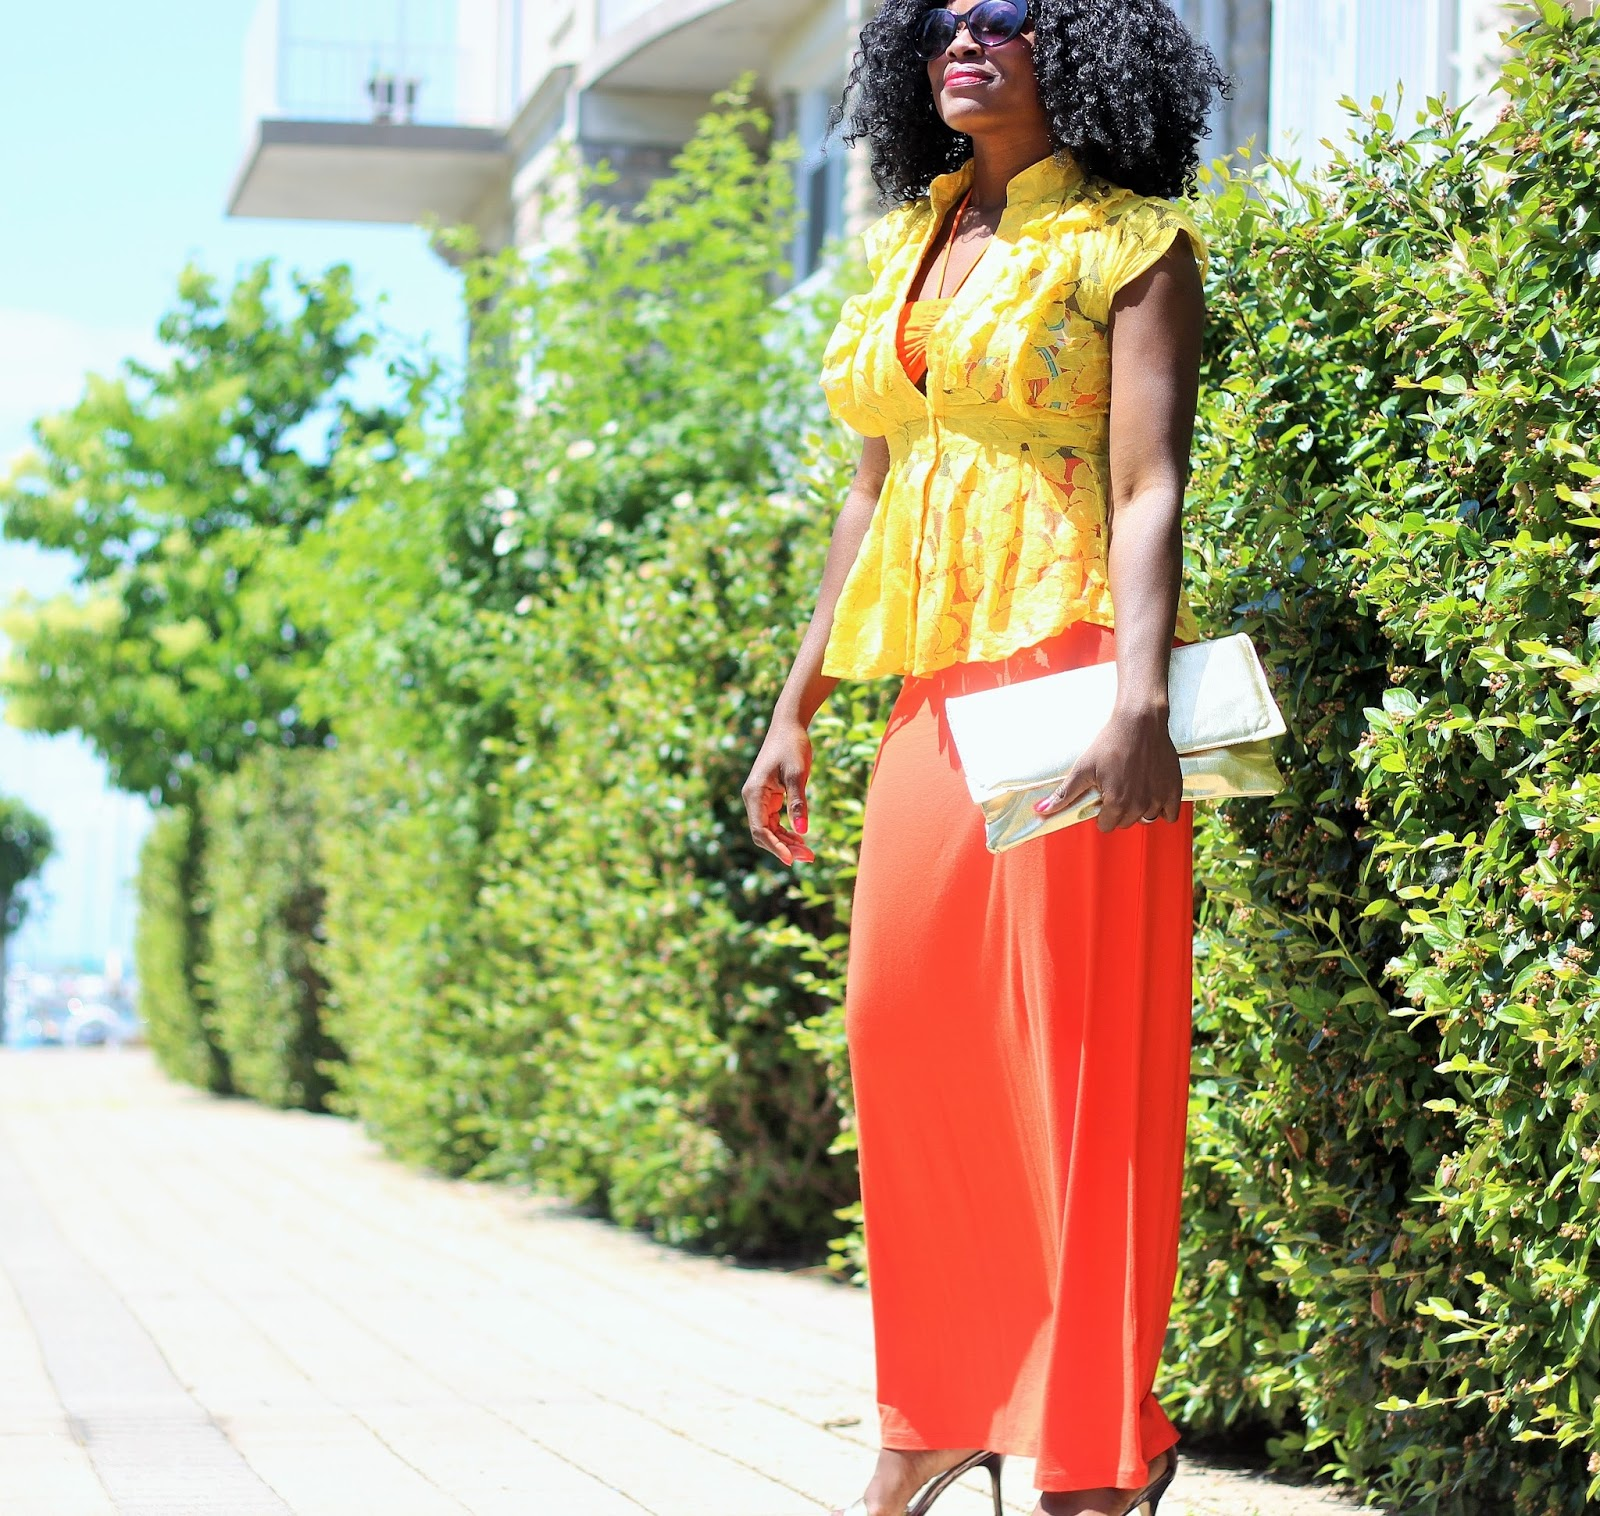 SUMMER LAYERING Bikini Style with Lace Top x Maxi Skirt